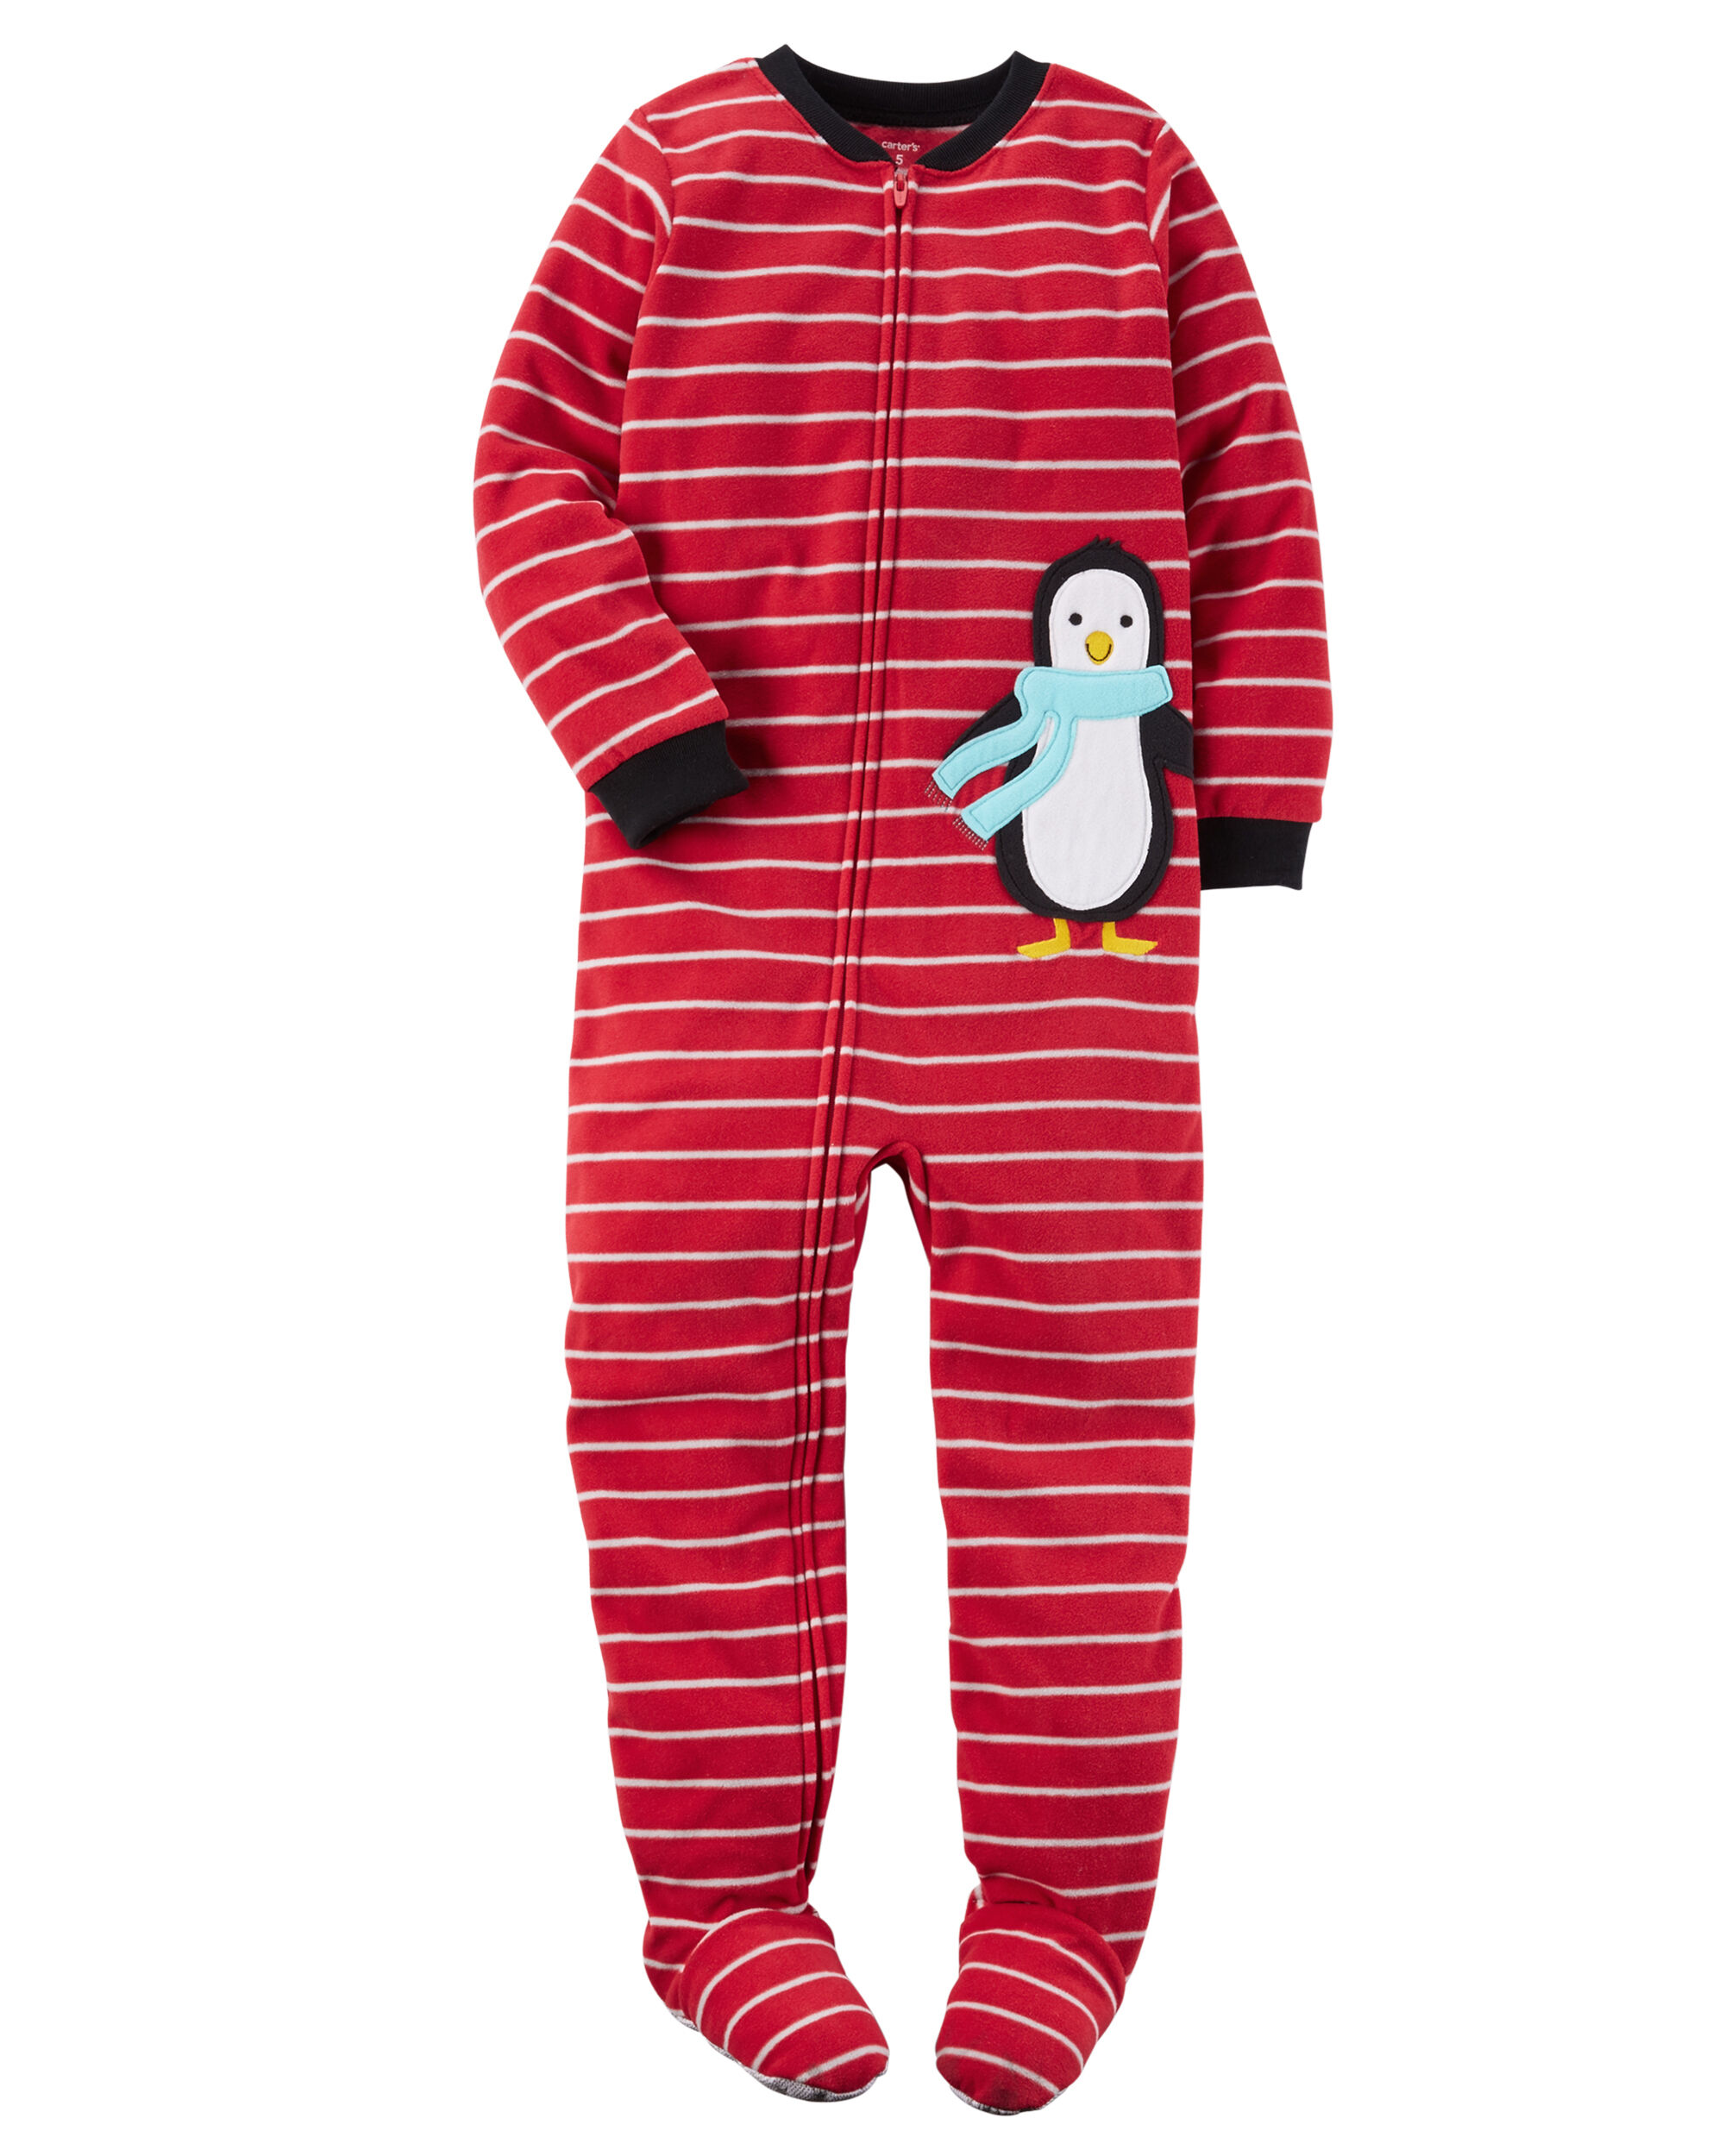 feet bottoms pajamas sleeping toddlers months up fleece pyjama cotton gown sleeper without infant suit one with sleepers baby boys button piece pajama